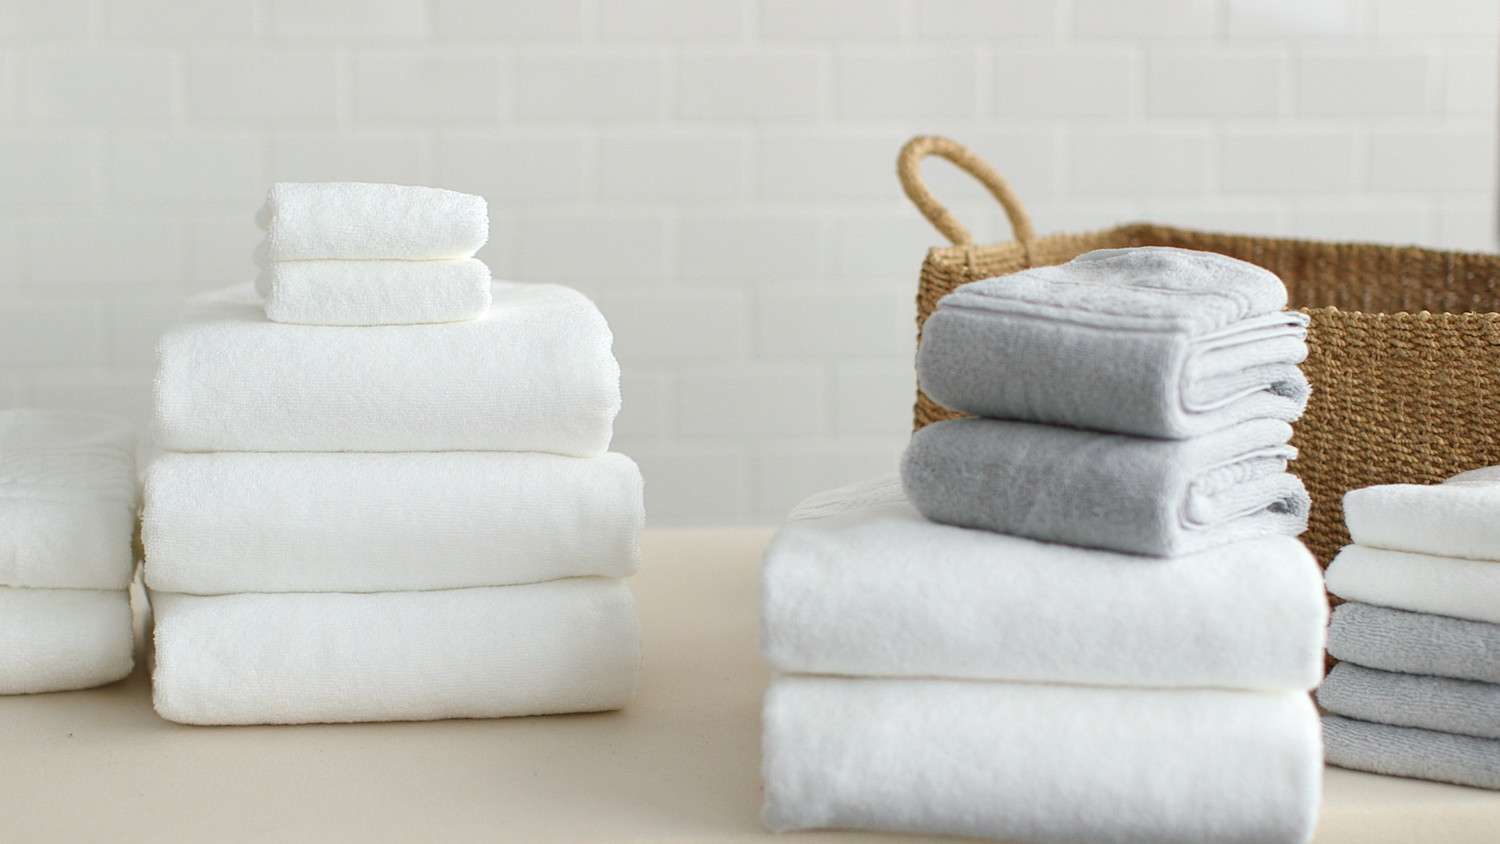 Video: How To Fold Bath Towels | Martha Stewart